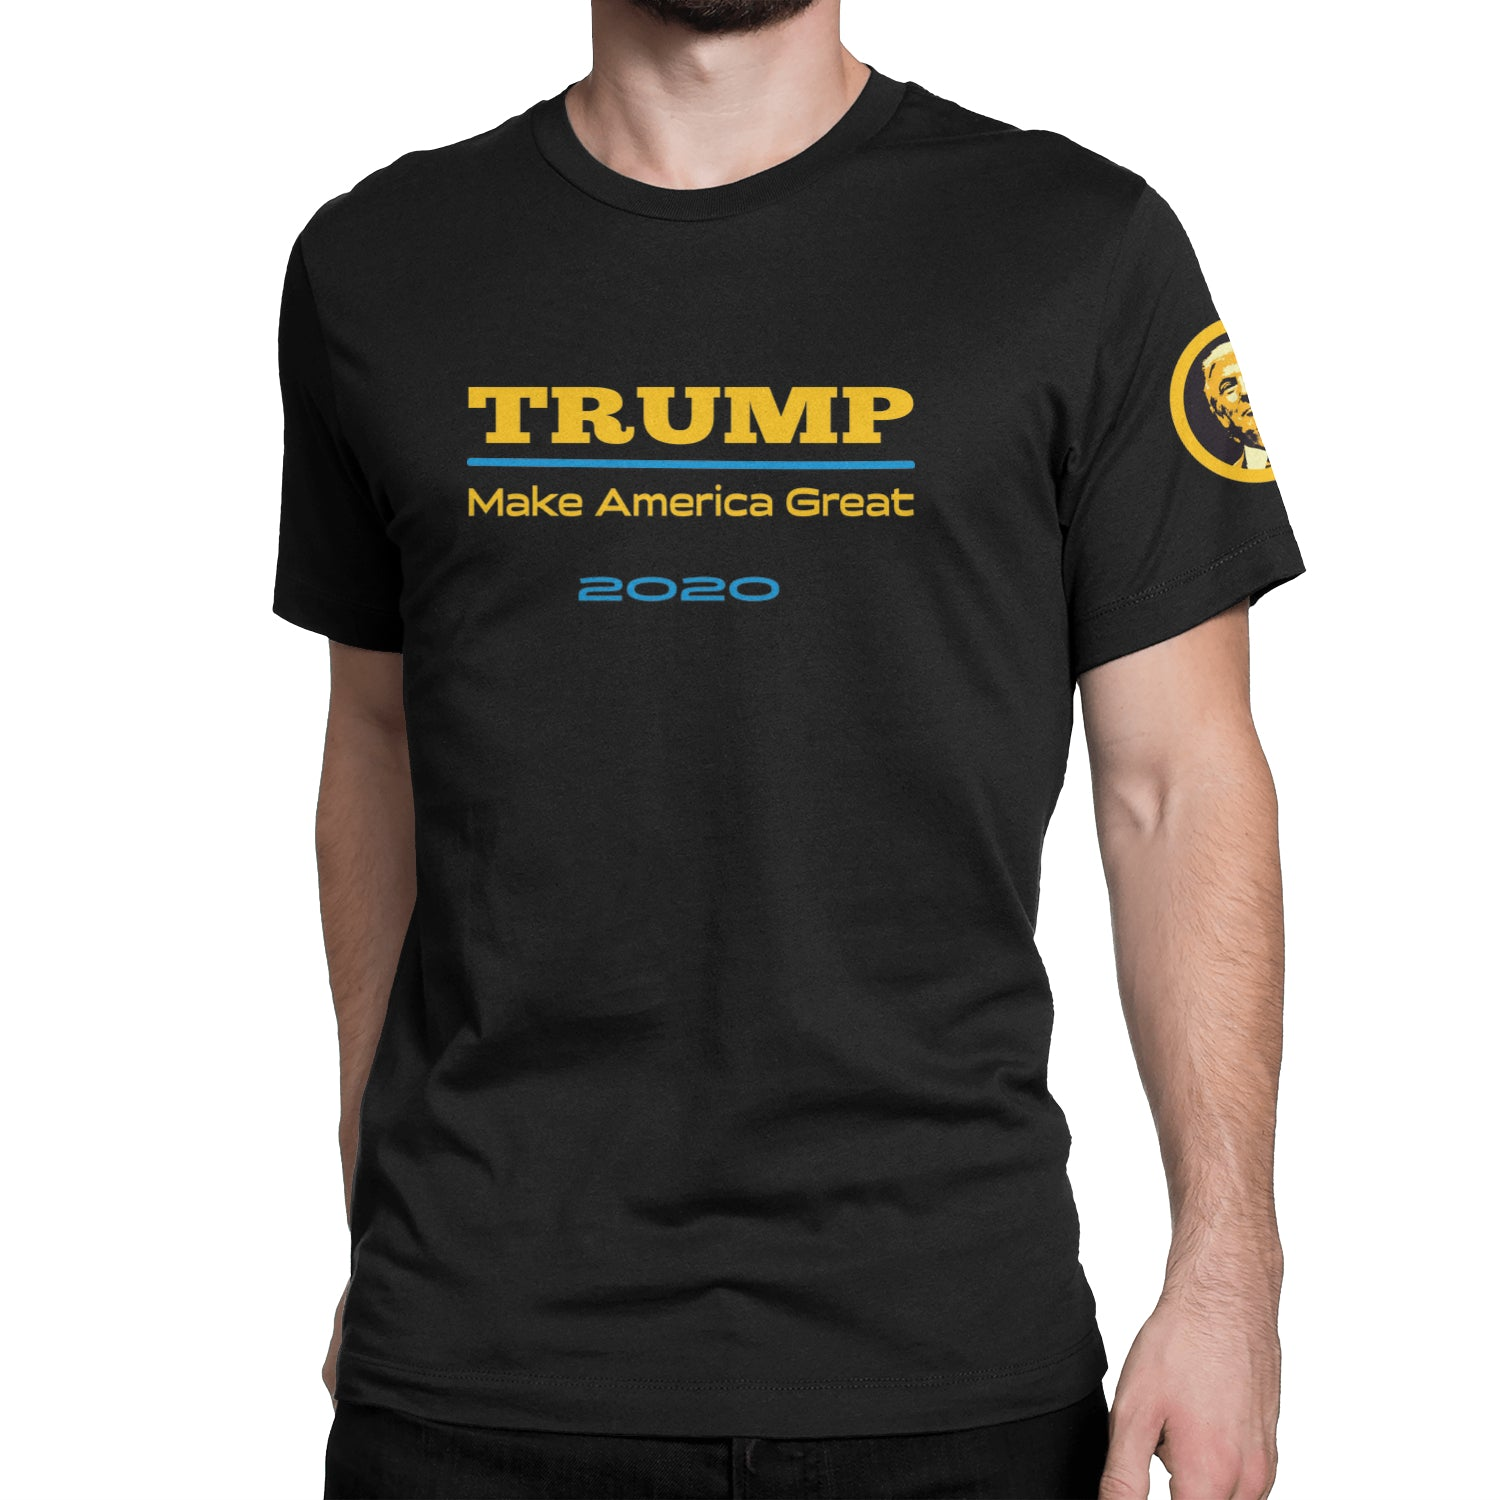 Trump Make America Great 2020 - Fuckinuts